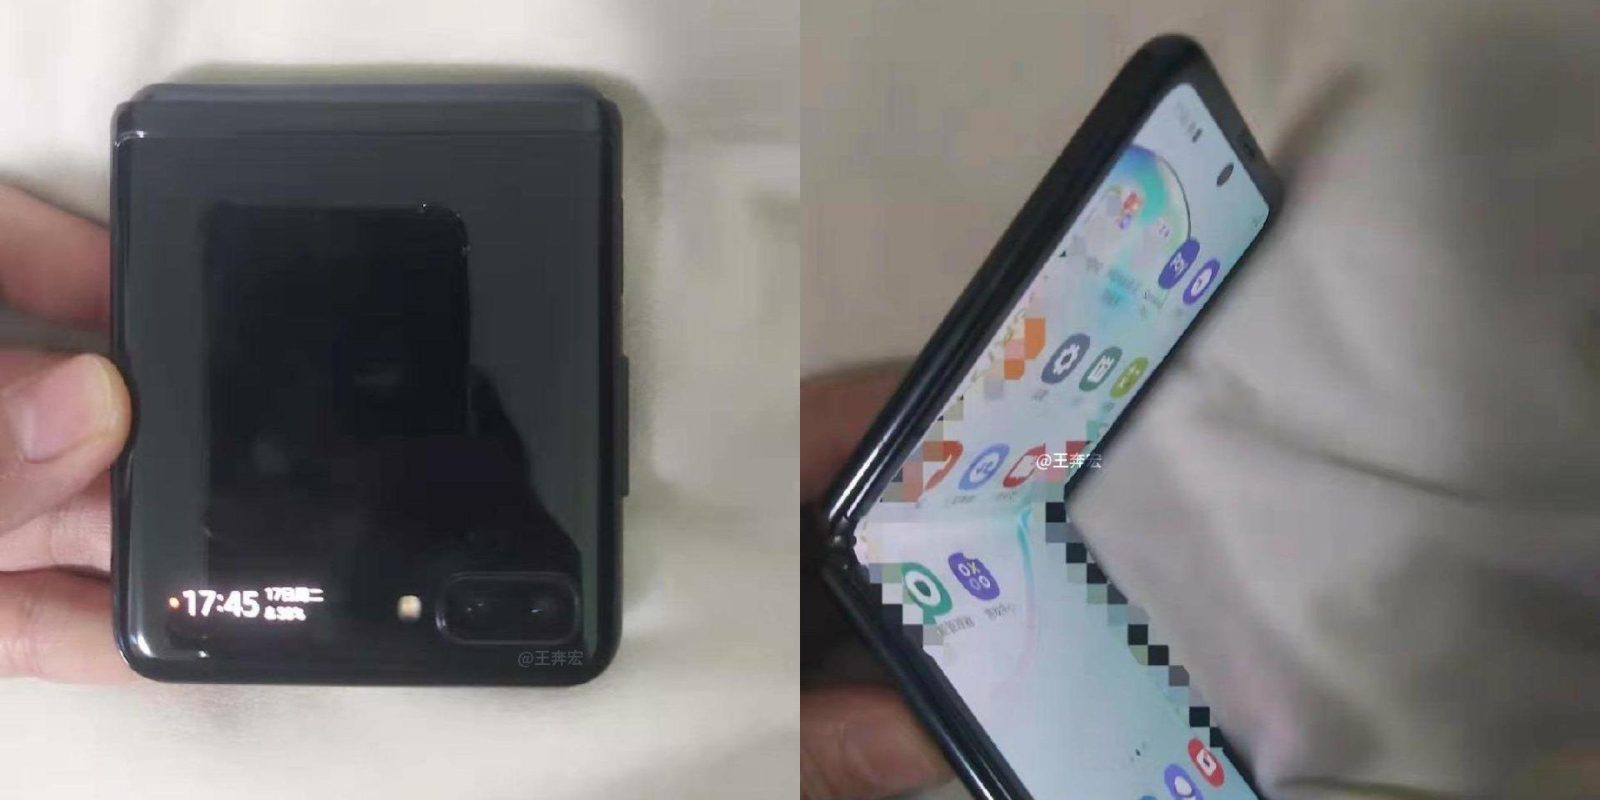 Samsung Galaxy Z Flip has a traditional fingerprint scanner, tiny outer display